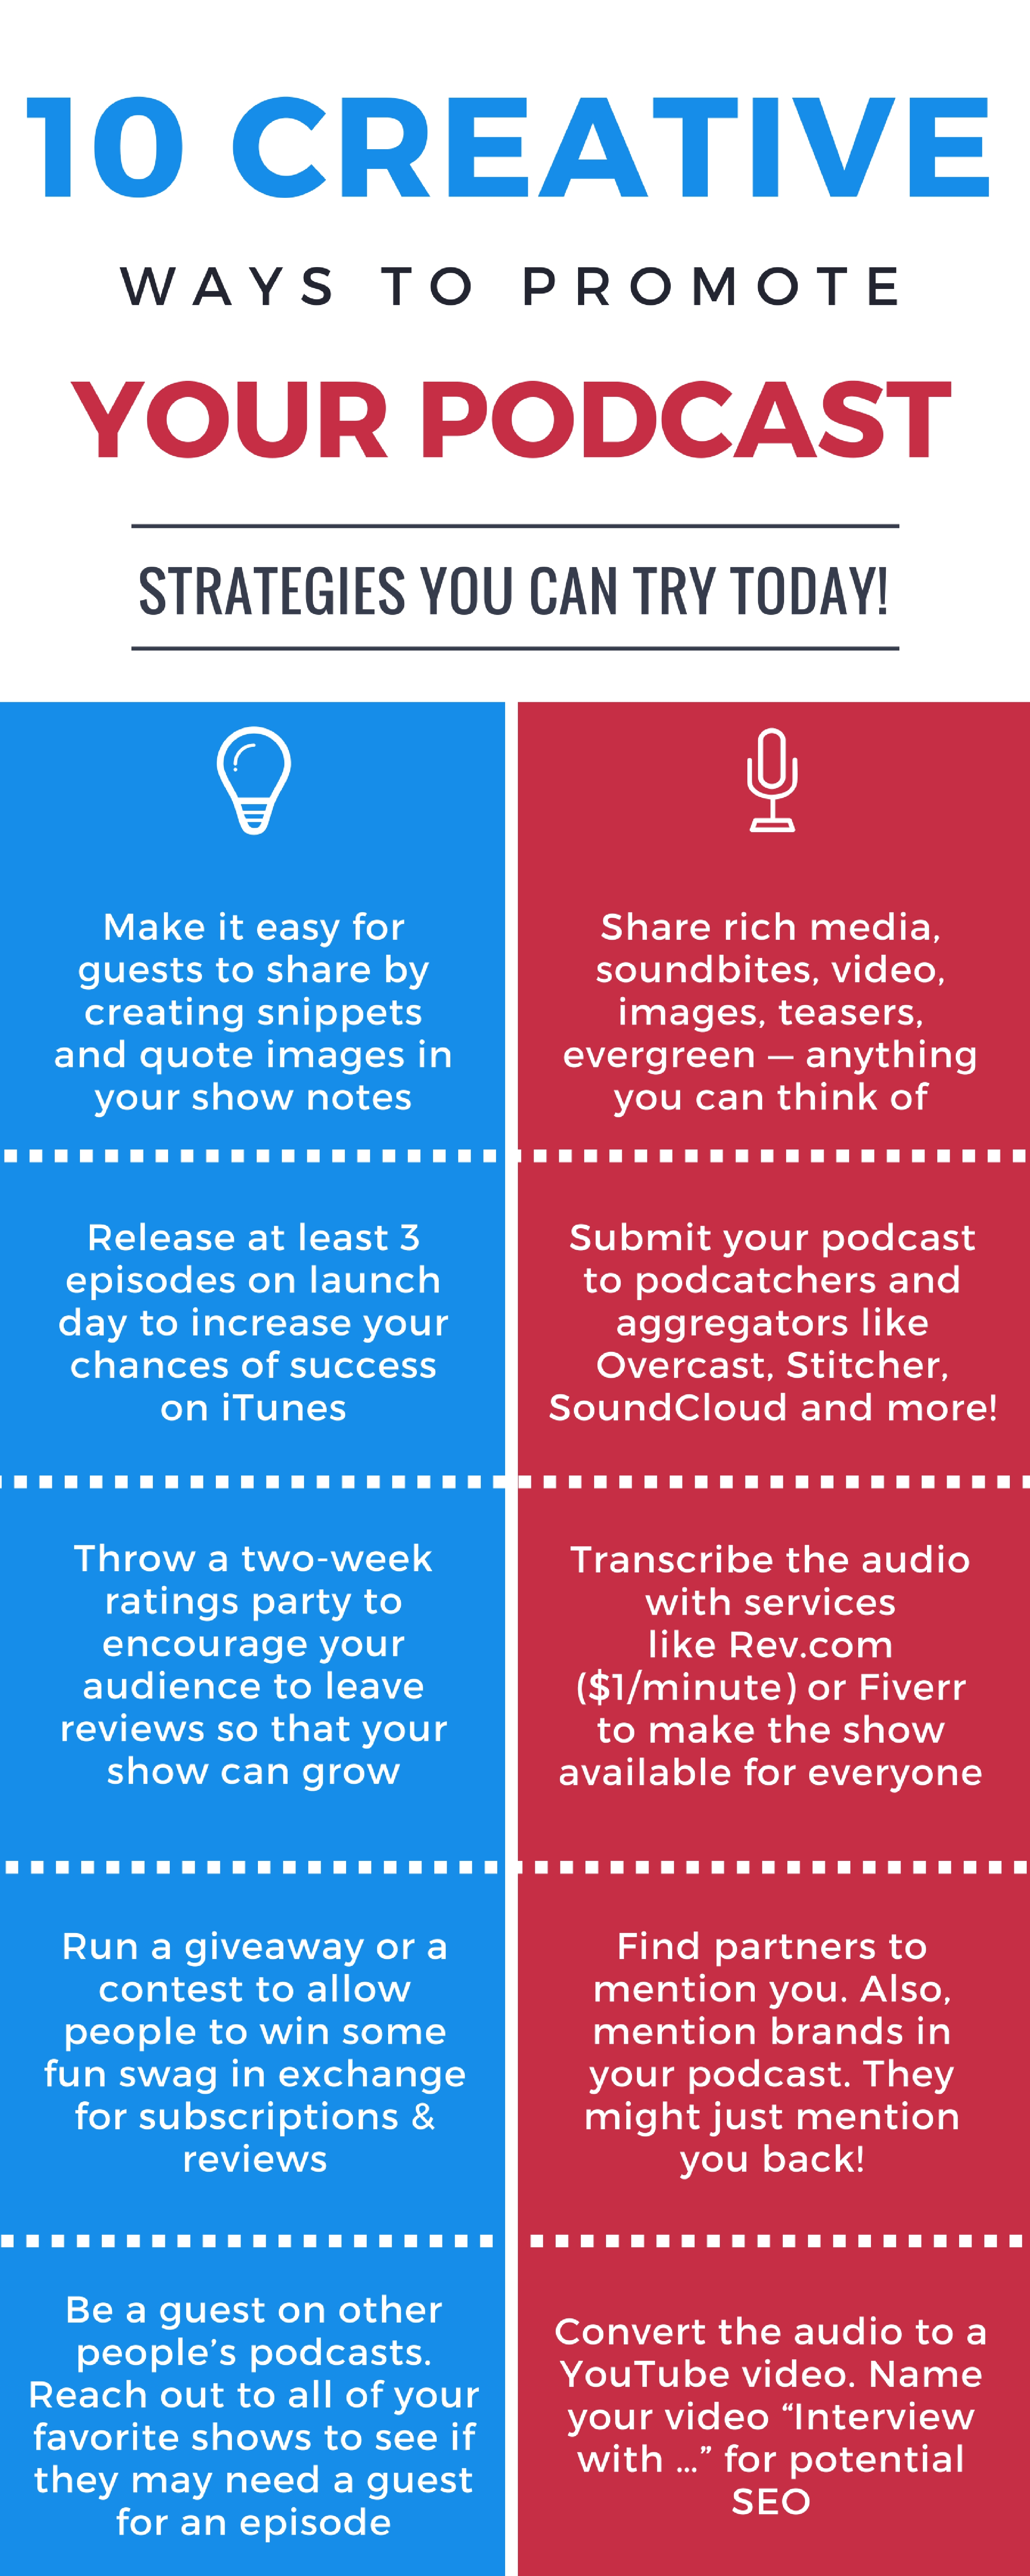 10 Stunning Funny Video Ideas For Youtube how to promote your new podcast 10 effective strategies to try